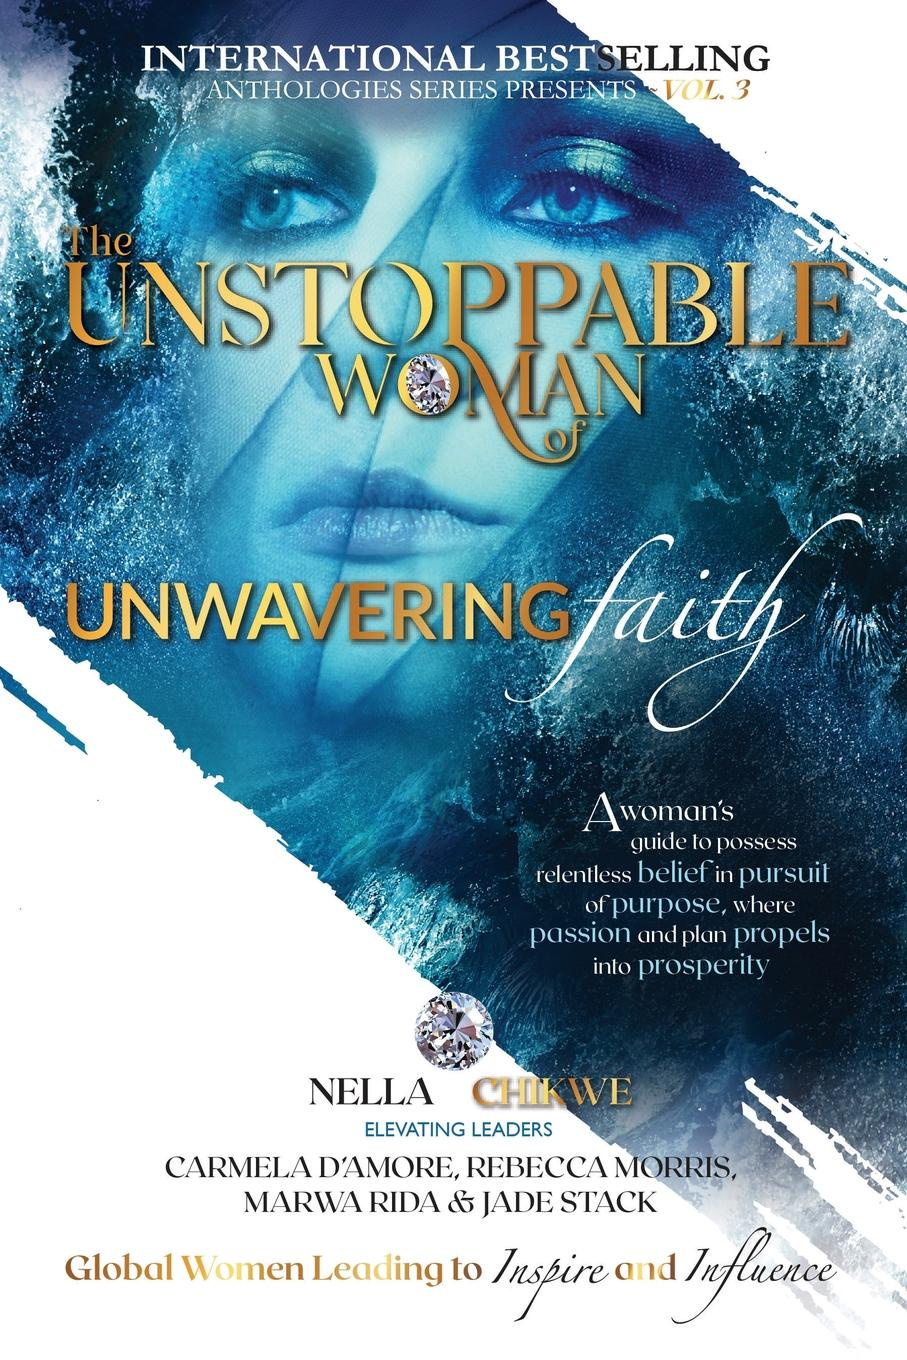 Nella Chikwe The Unstoppable Woman Of Unwavering Faith. A Woman.s Guide to Possess Relentless Belief in Pursuit of Purpose, where Passion . Plan Propels into Prosperity robin a hines in pursuit of purpose a guide to getting results when i pray